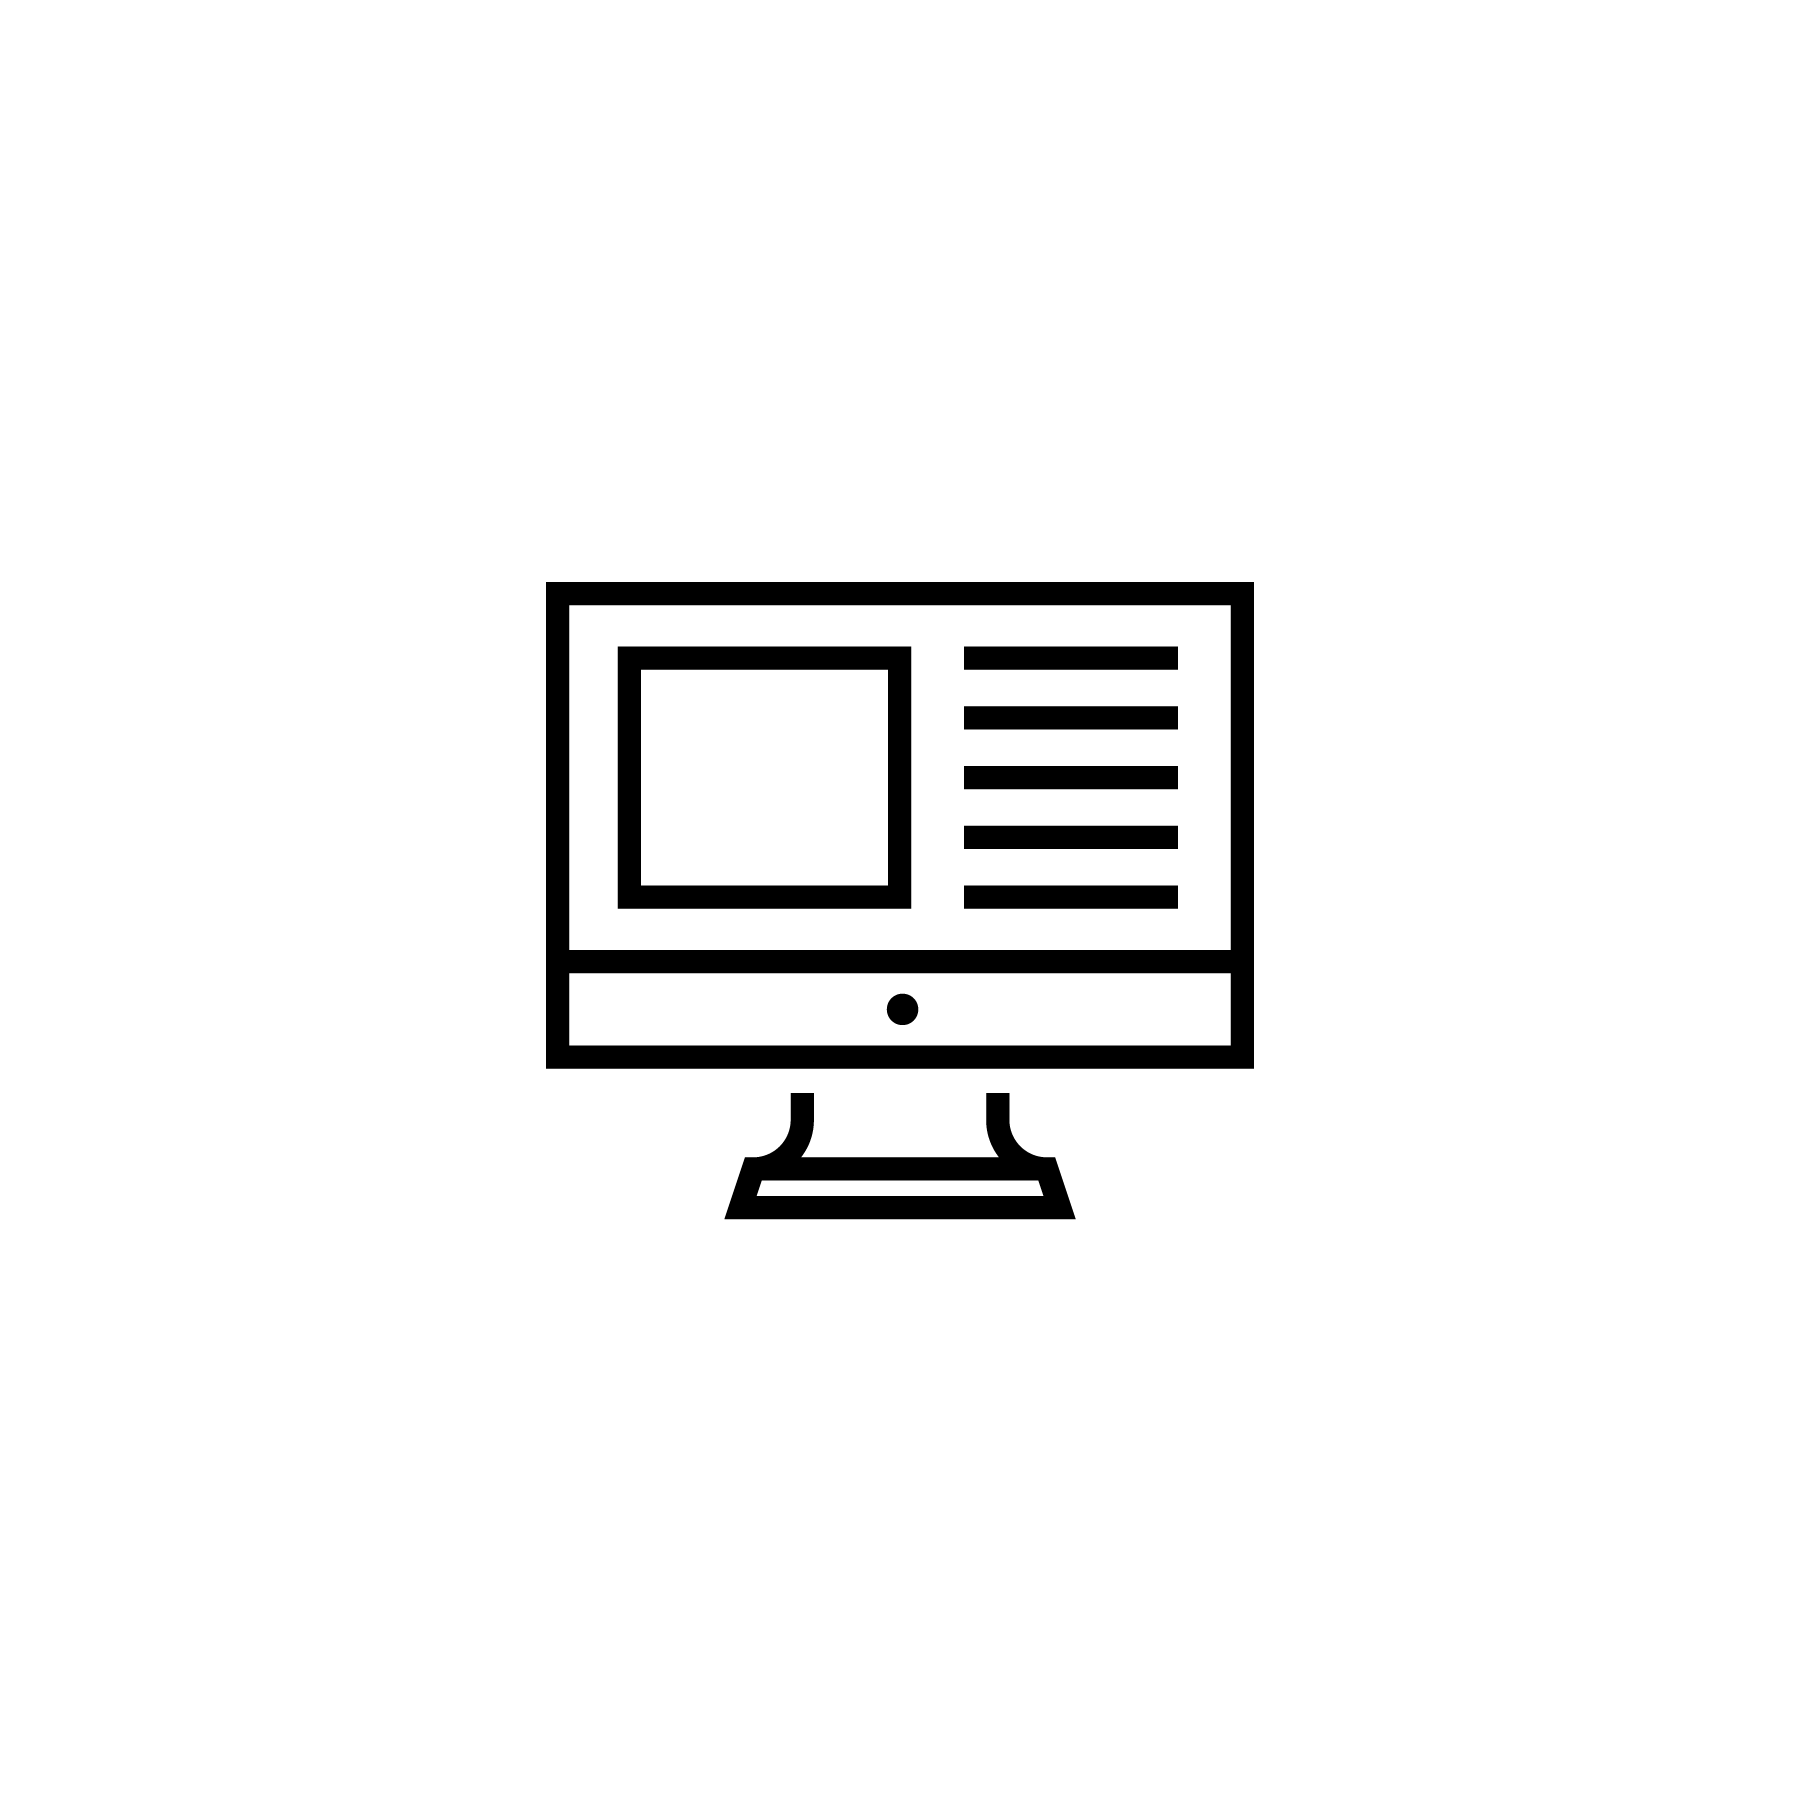 SiteIcons-smaller-02.png